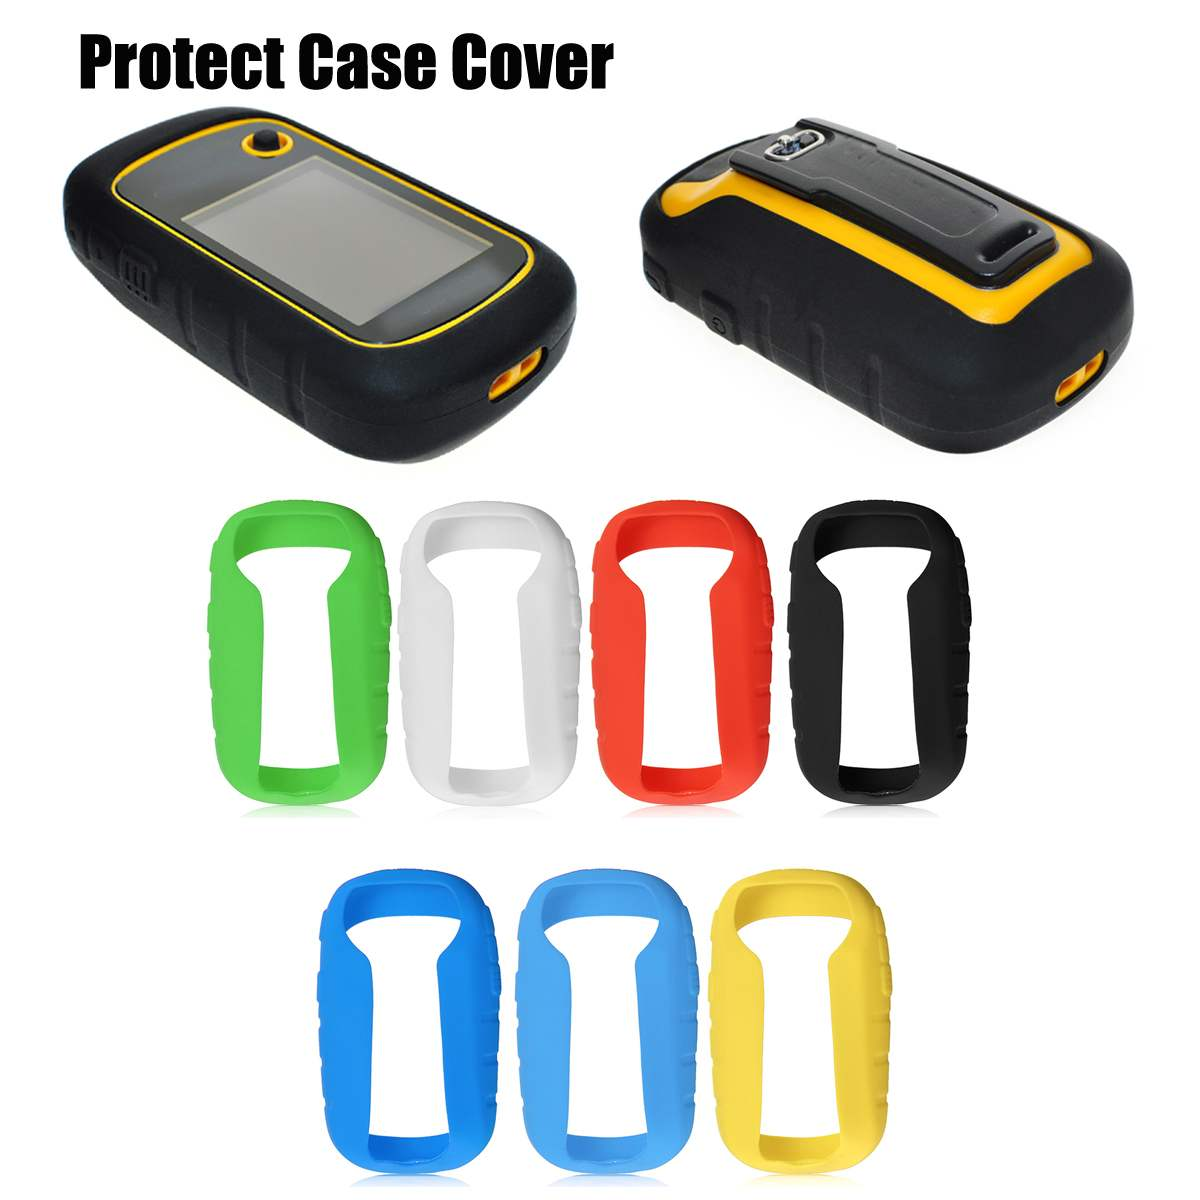 Outdoor Hiking <font><b>Handheld</b></font> <font><b>GPS</b></font> Navigator Accessories Silicone Protect Case Cover Protector for <font><b>Garmin</b></font> eTrex 10 20 30 10x 20x 30x image